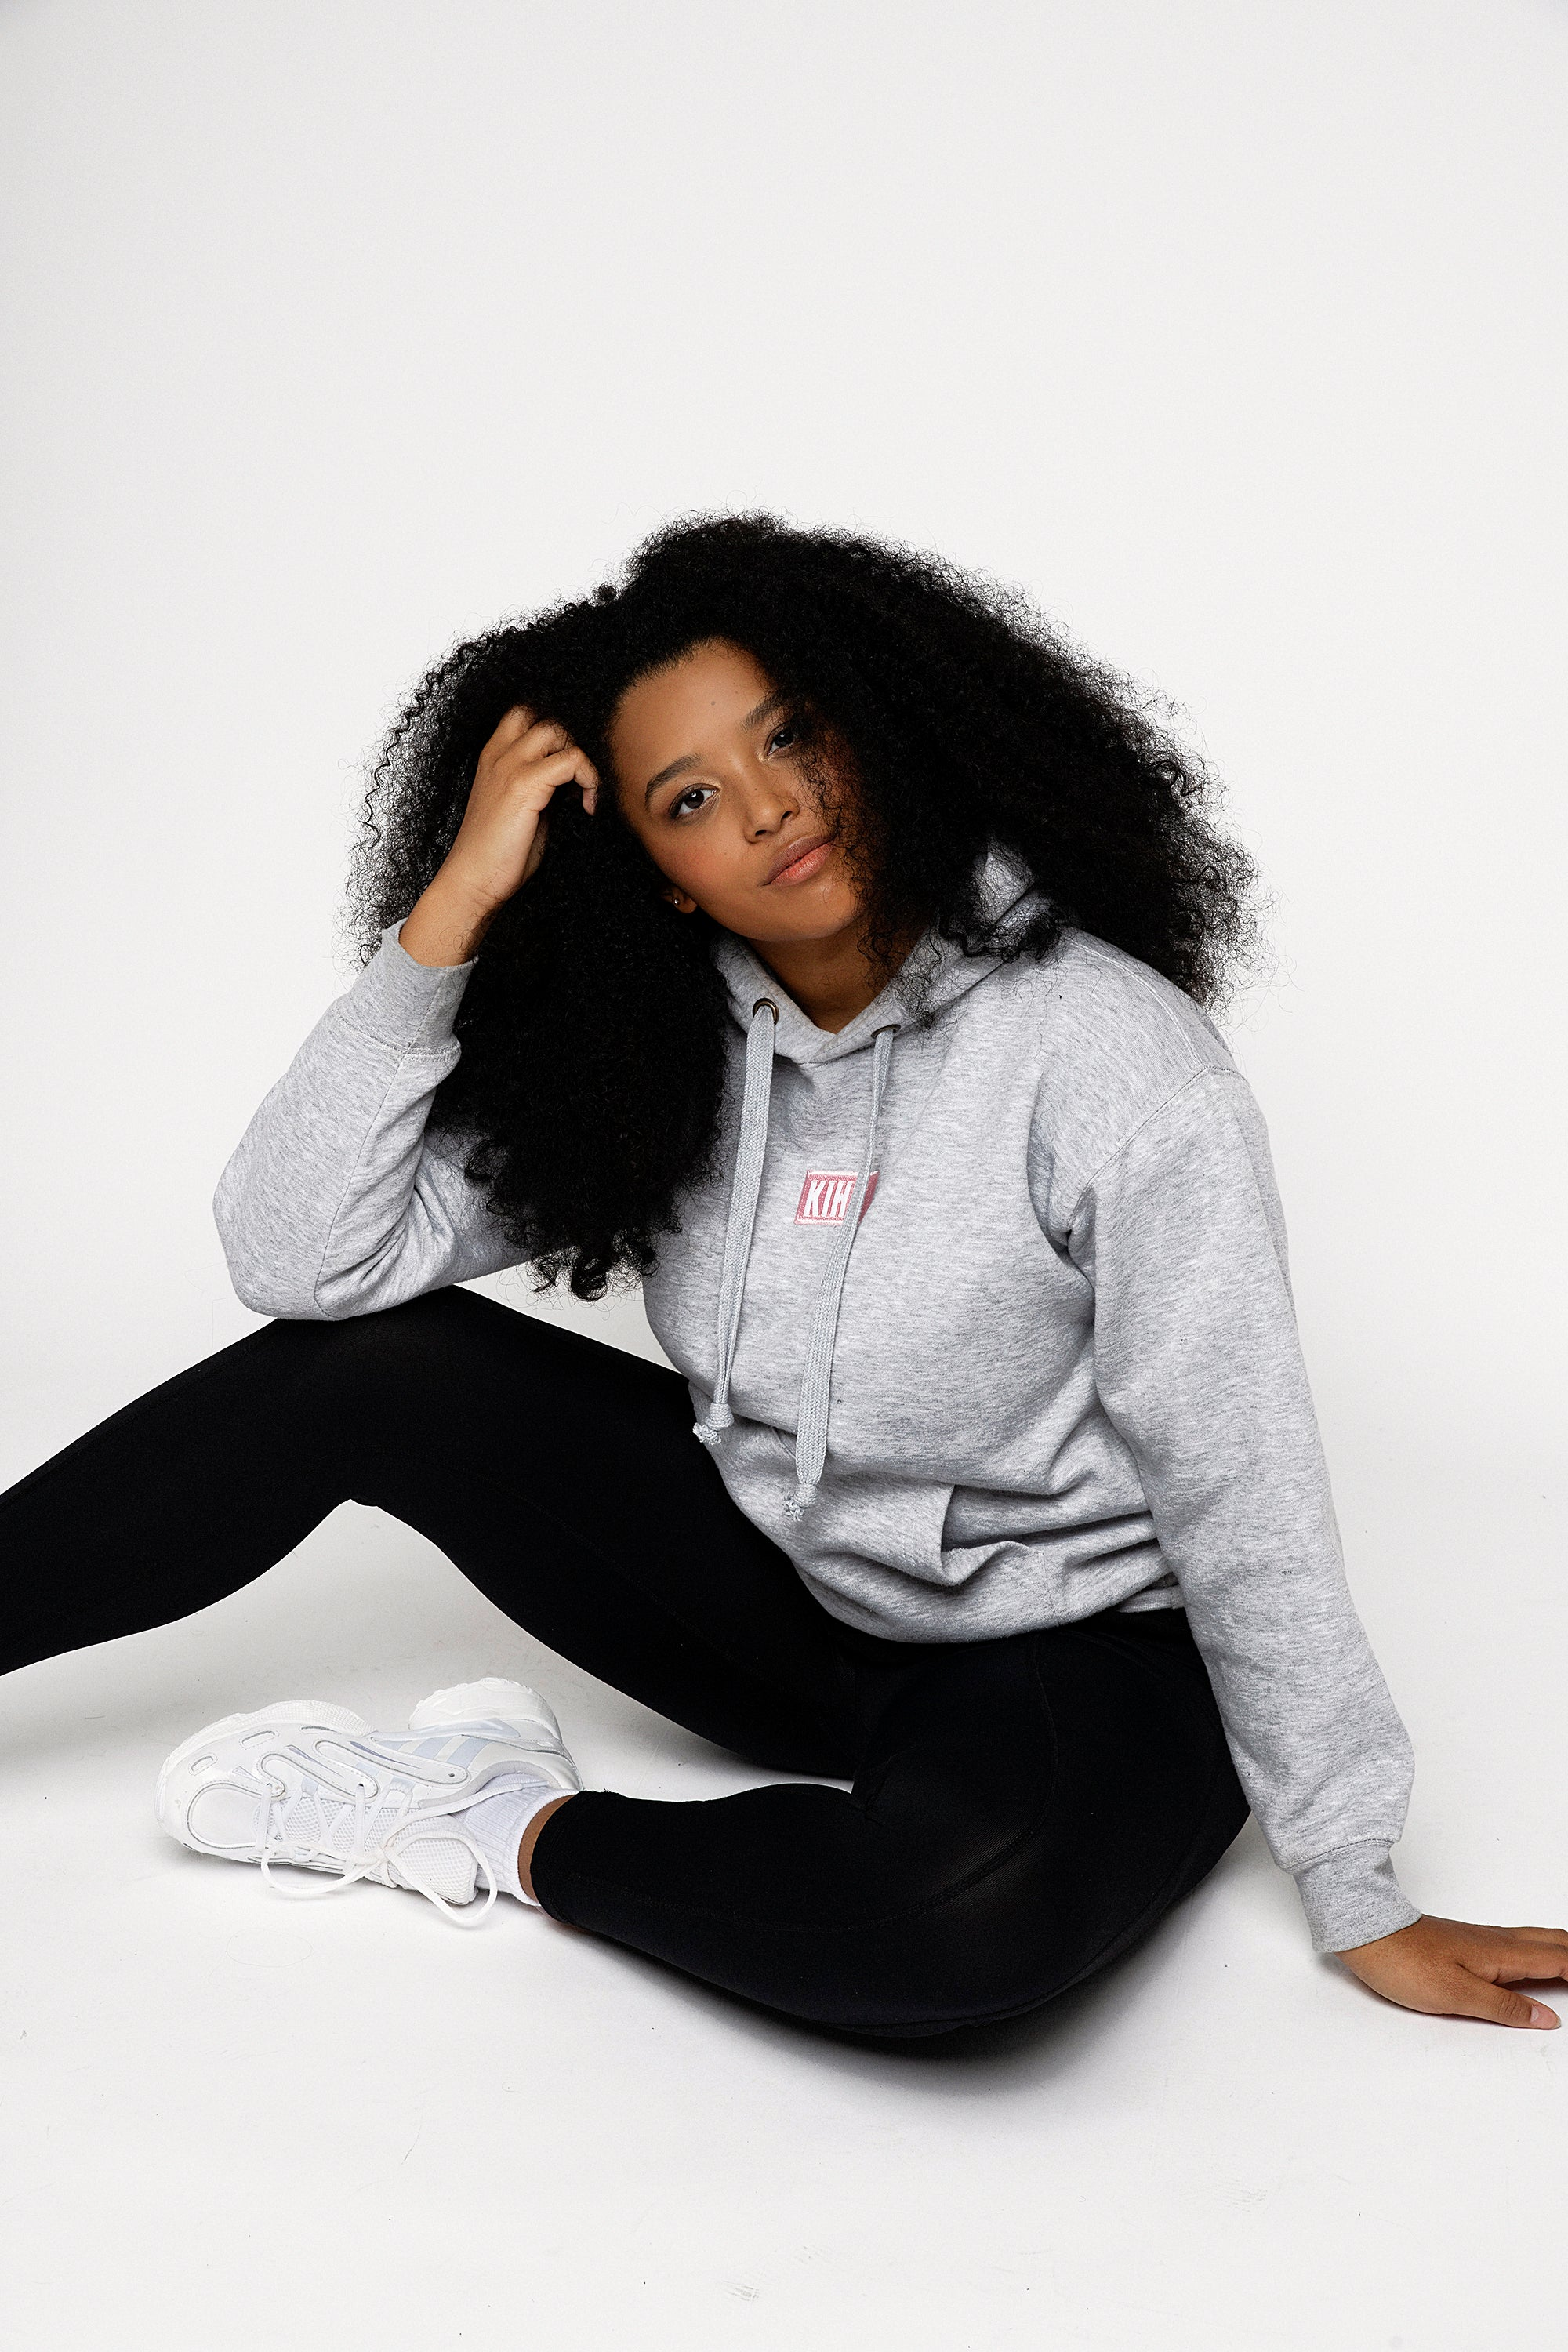 Light Grey Marl slightly oversized drop shoulder unisex hoodie with Kiht logo embroidered patch on the front in pink and white. Super soft thick fabric with chunky cord detail and hidder inner pockets make this our ultimate hoodie.